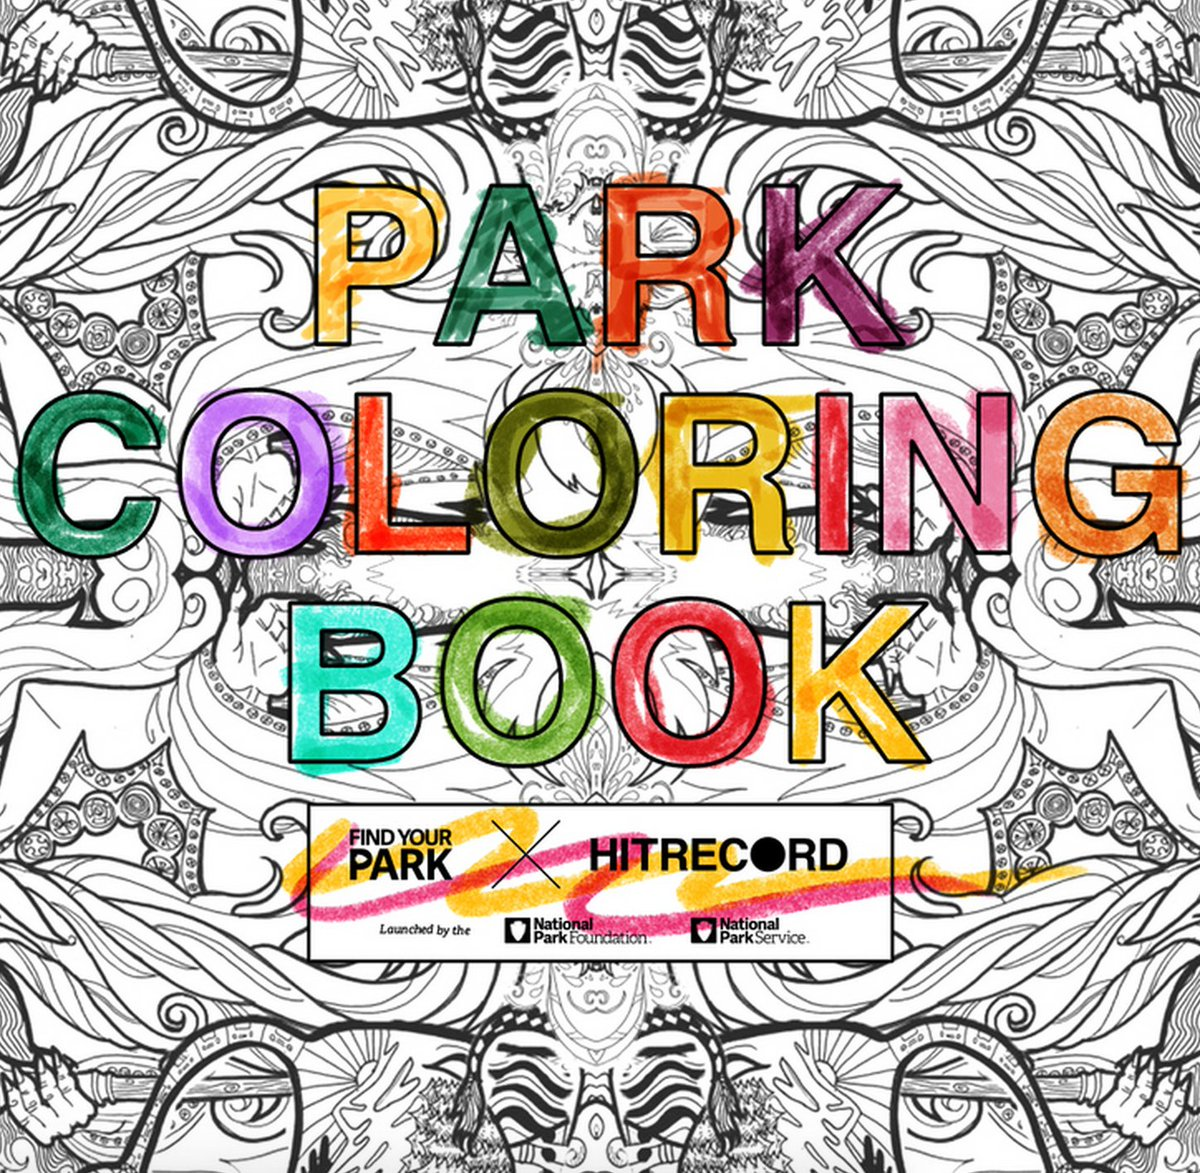 RT @hitRECord Here's a new #FindYourPark coloring book request for visual artists. Check it: https://t.co/Yw69h2UKa2 https://t.co/29gjgafFuX